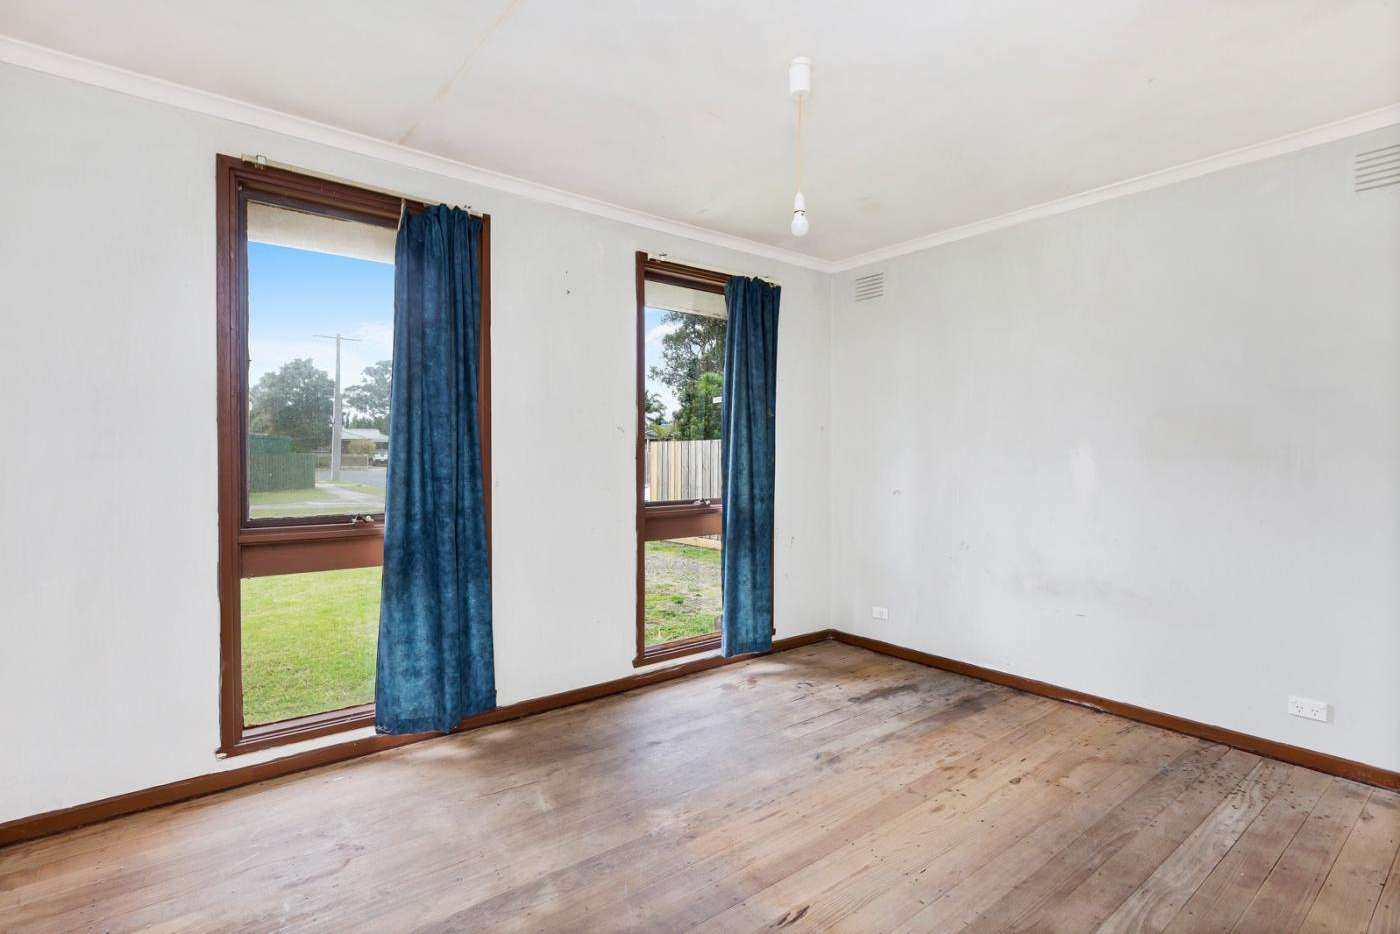 Sixth view of Homely house listing, 4 Deakin Crescent, Baxter VIC 3911